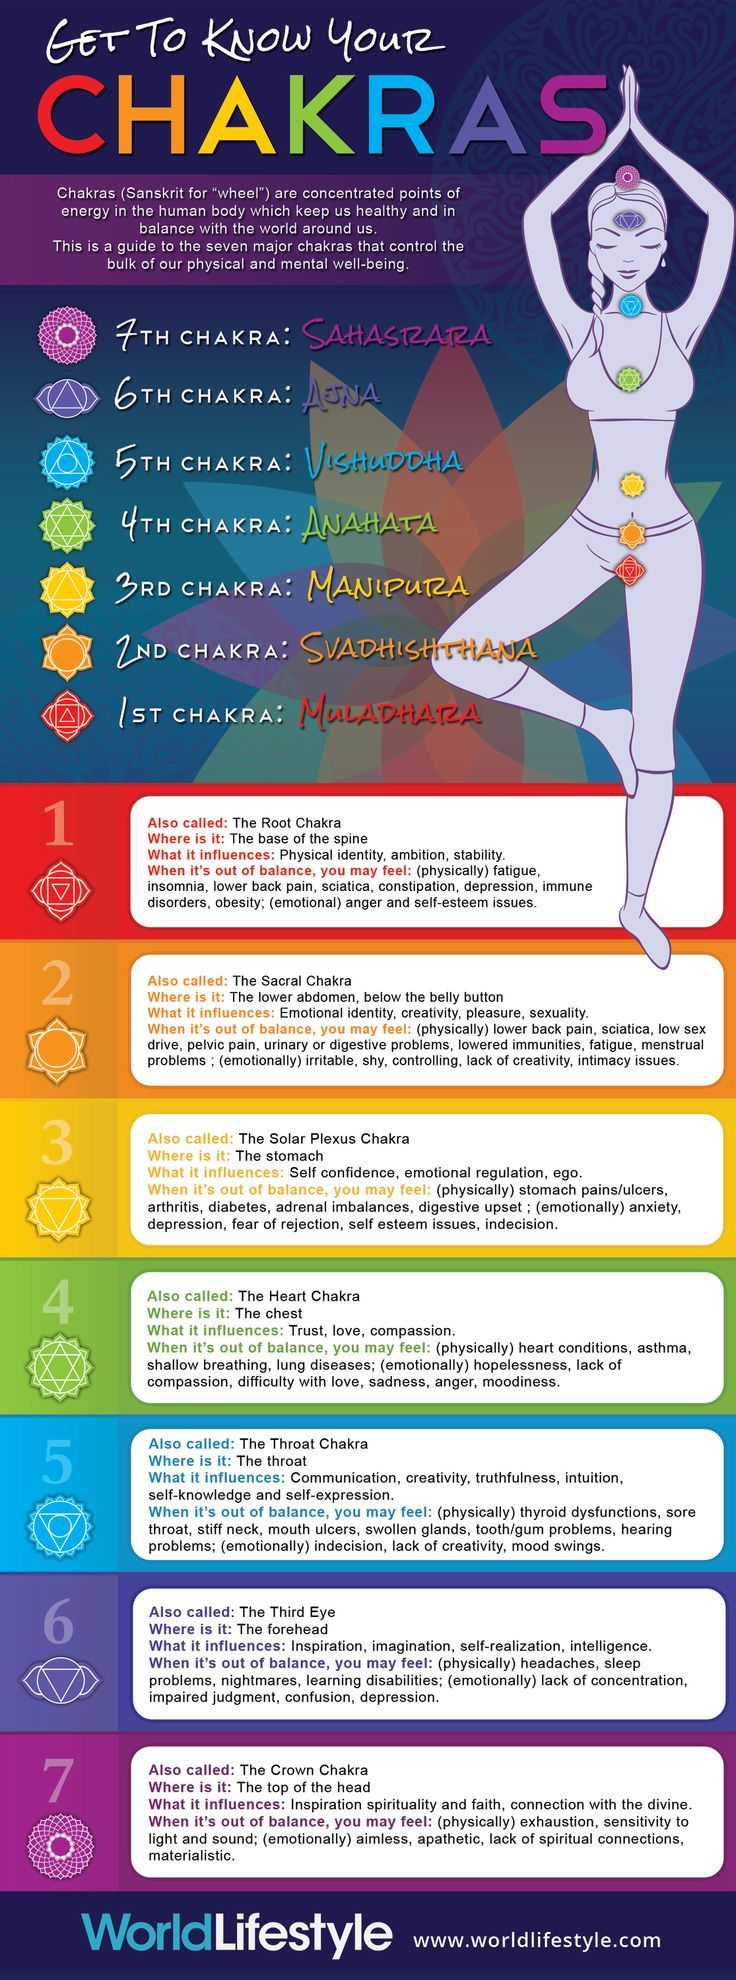 Get to Know Your 7 Chakras